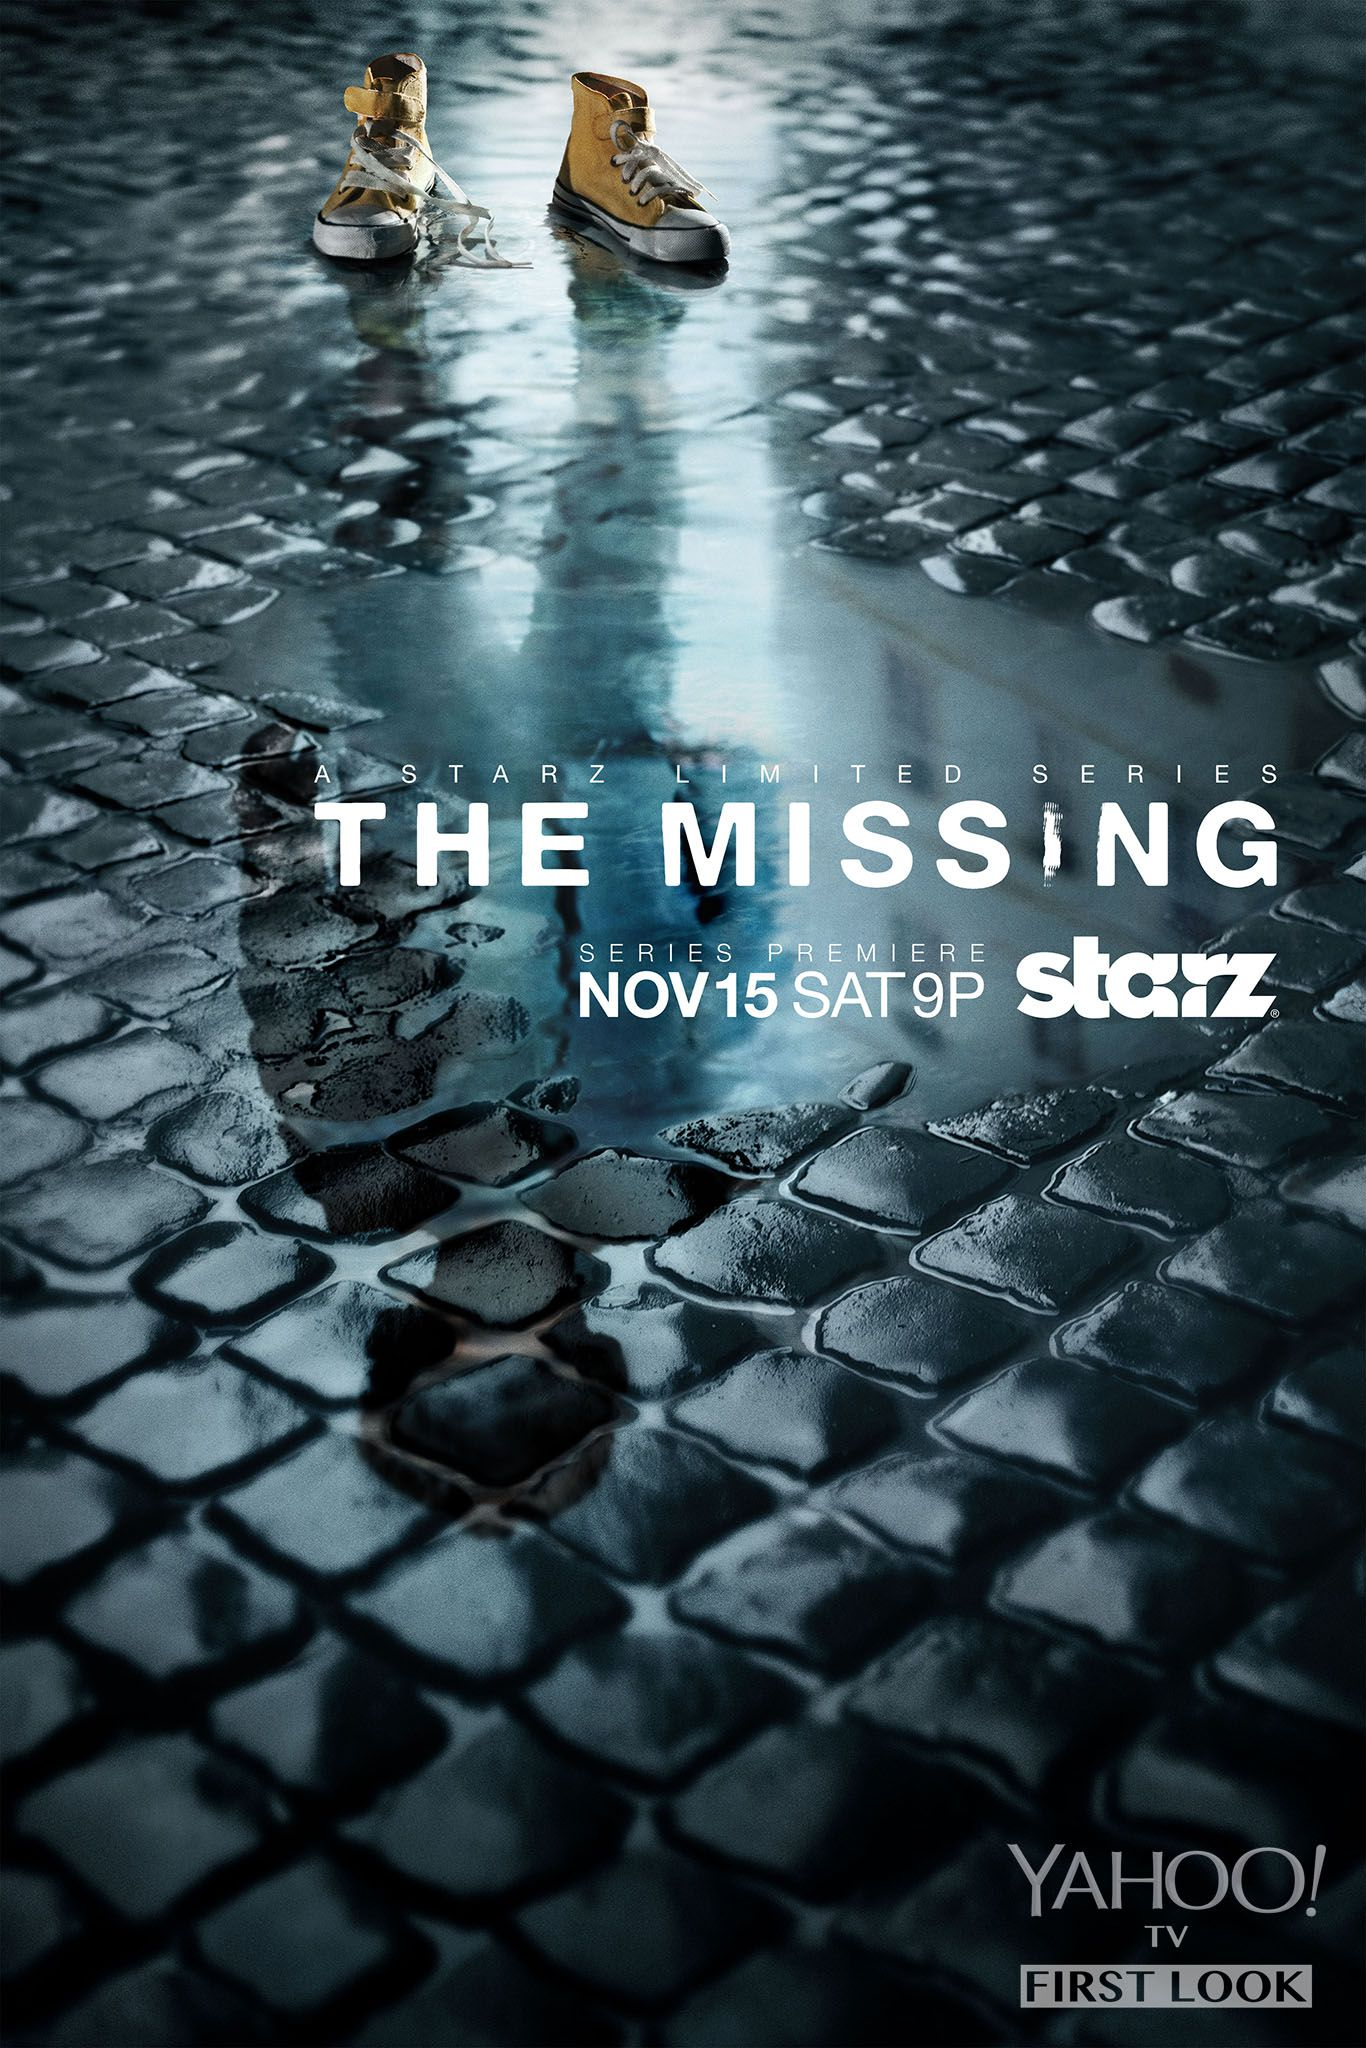 The Missing - Série (2014) streaming VF gratuit complet